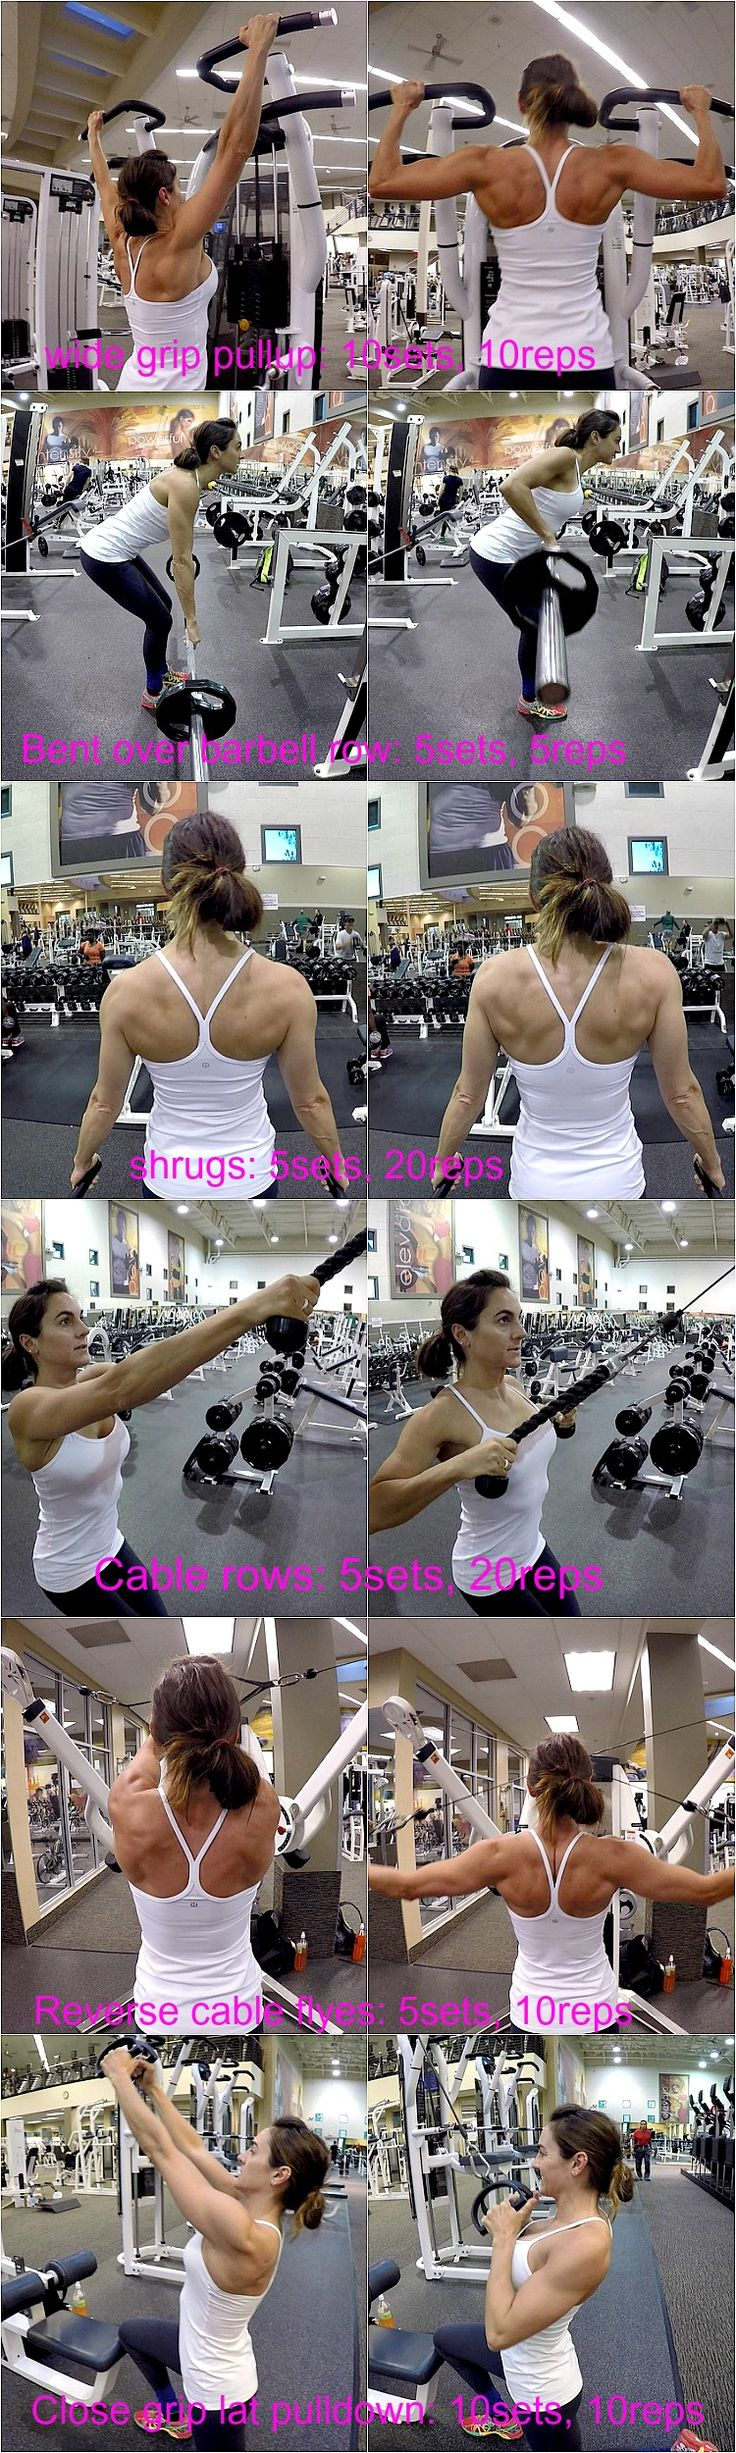 A few good back exercises #backday #weightlifting